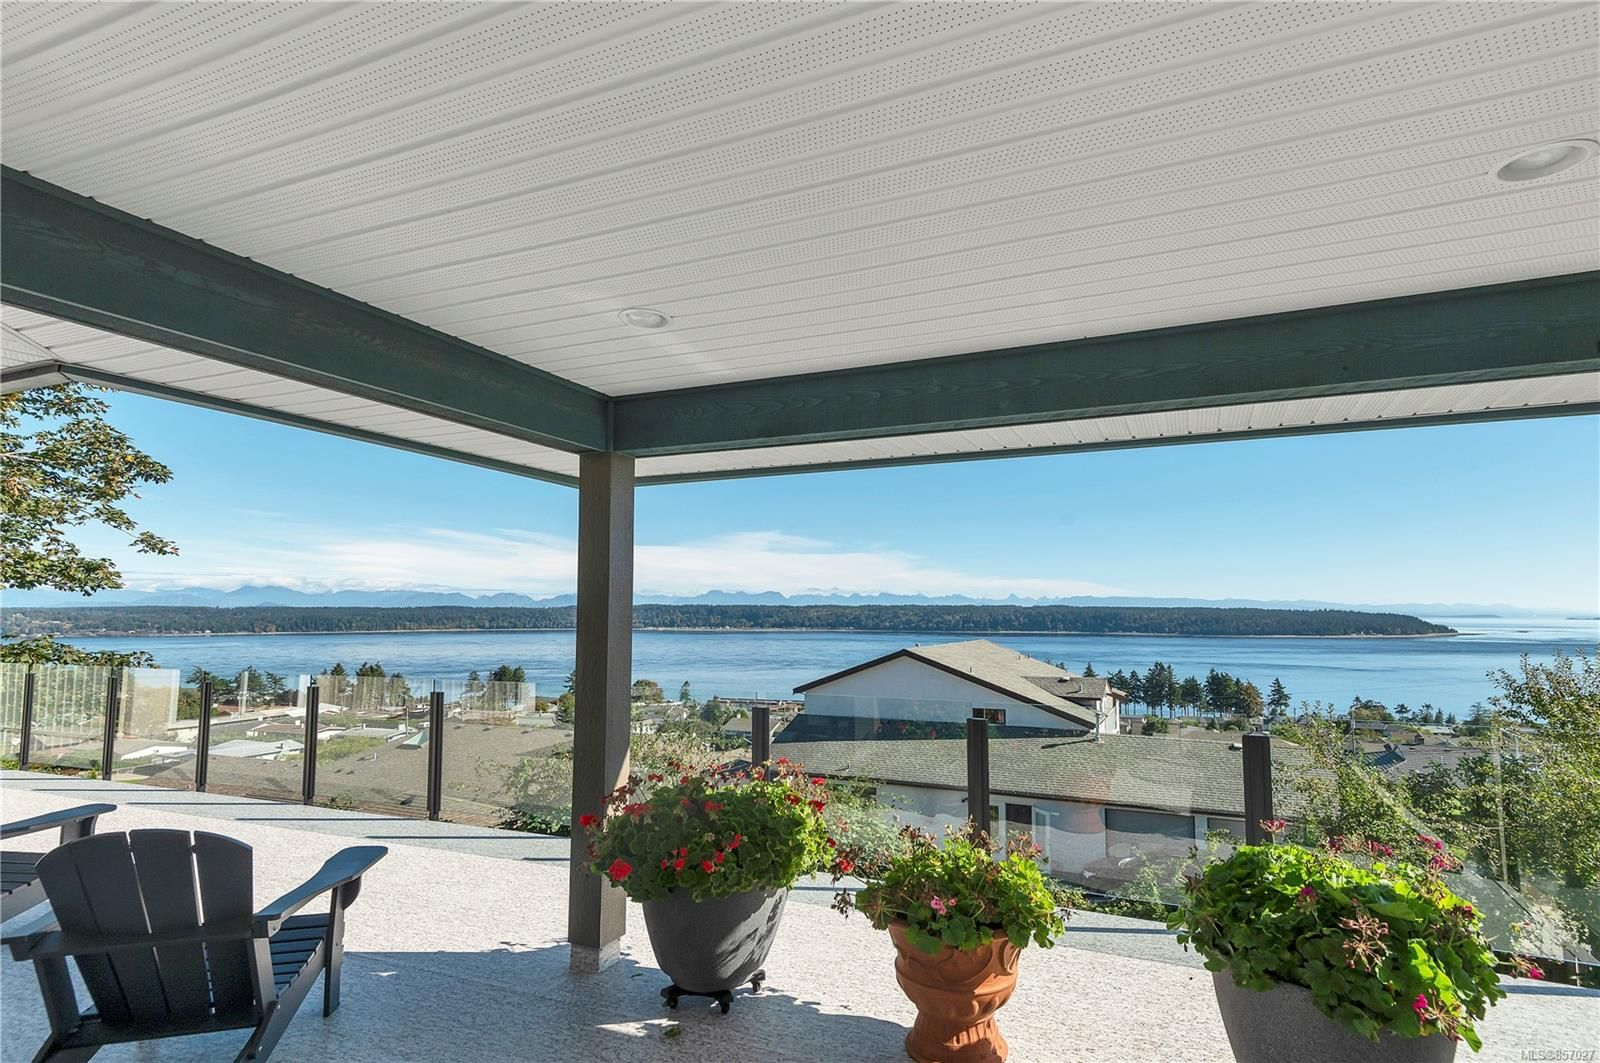 Photo 5: Photos: 253 S Alder St in : CR Campbell River South House for sale (Campbell River)  : MLS®# 857027